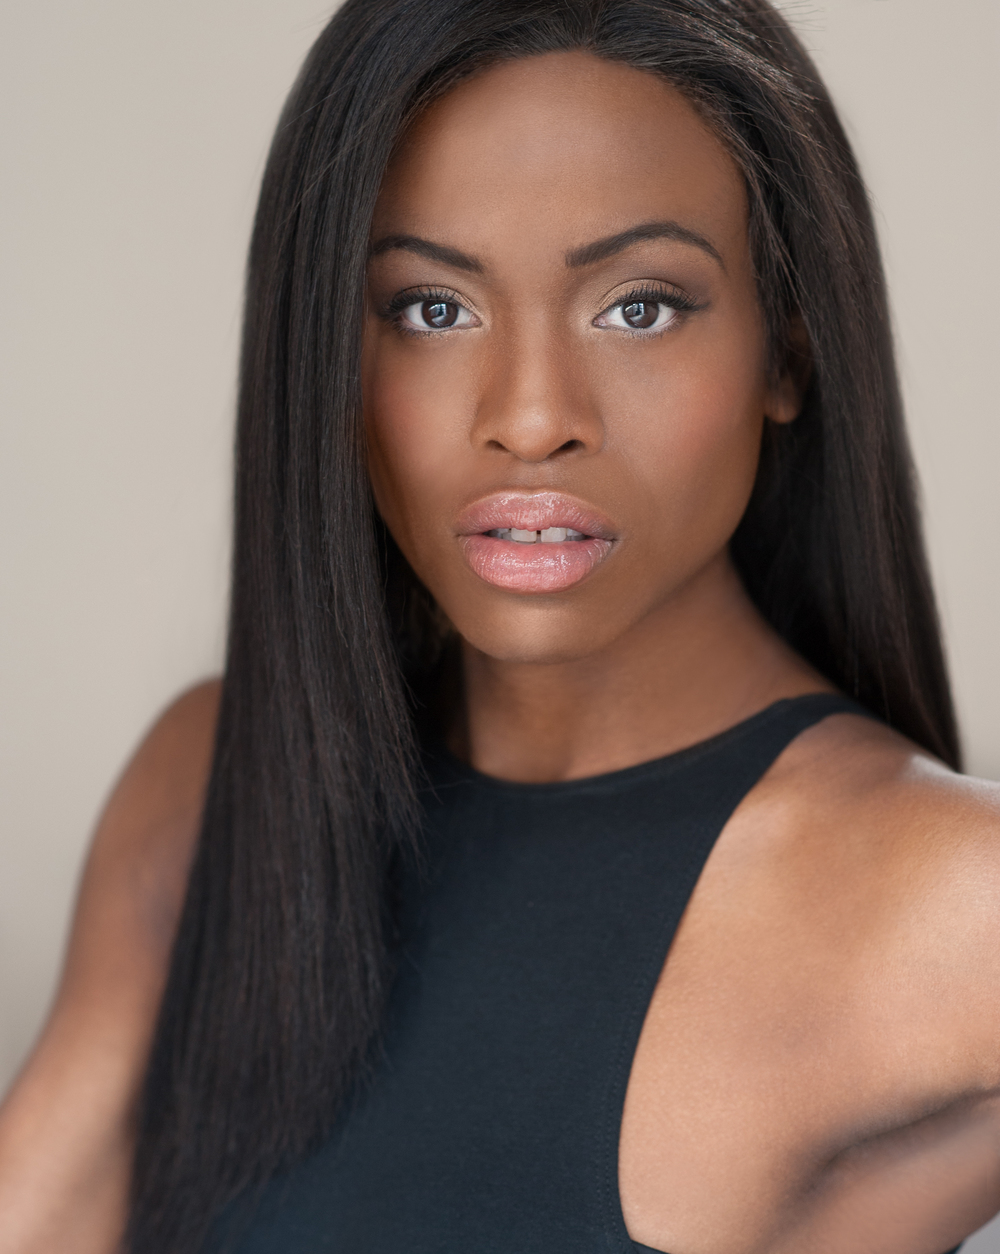 Angelica Gregory - Headshot #2.jpg